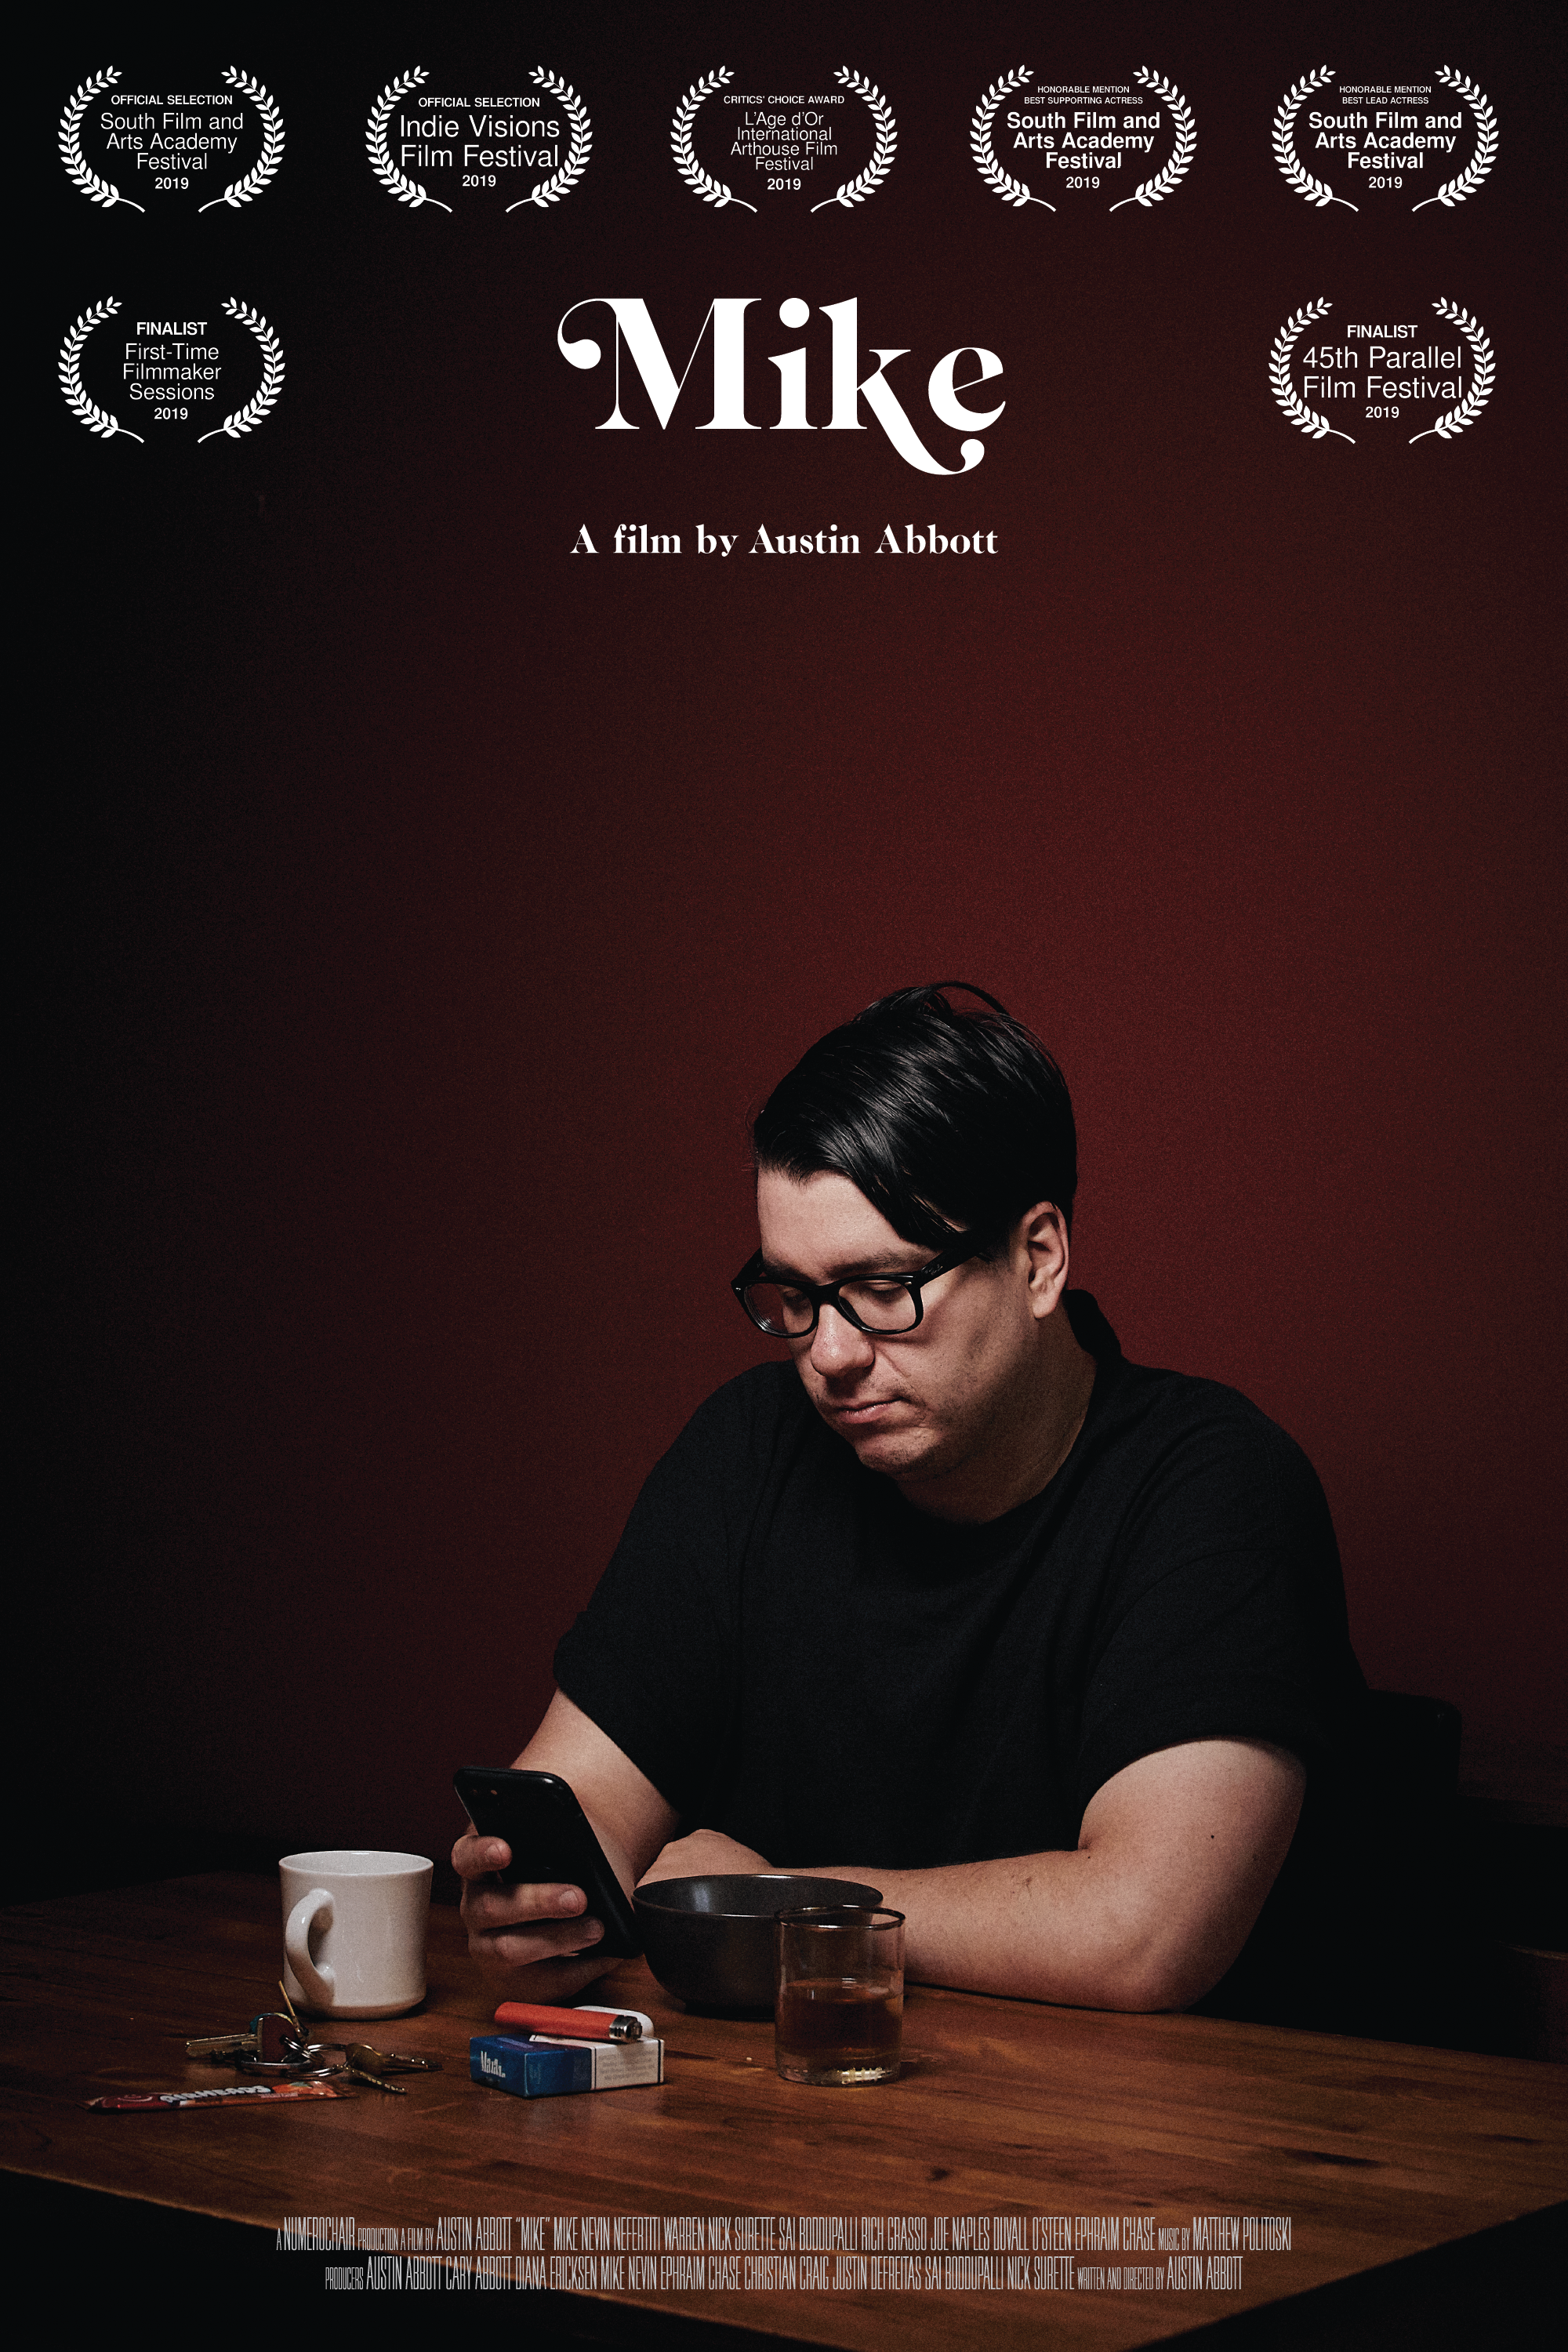 Film poster for MIKE (2019)